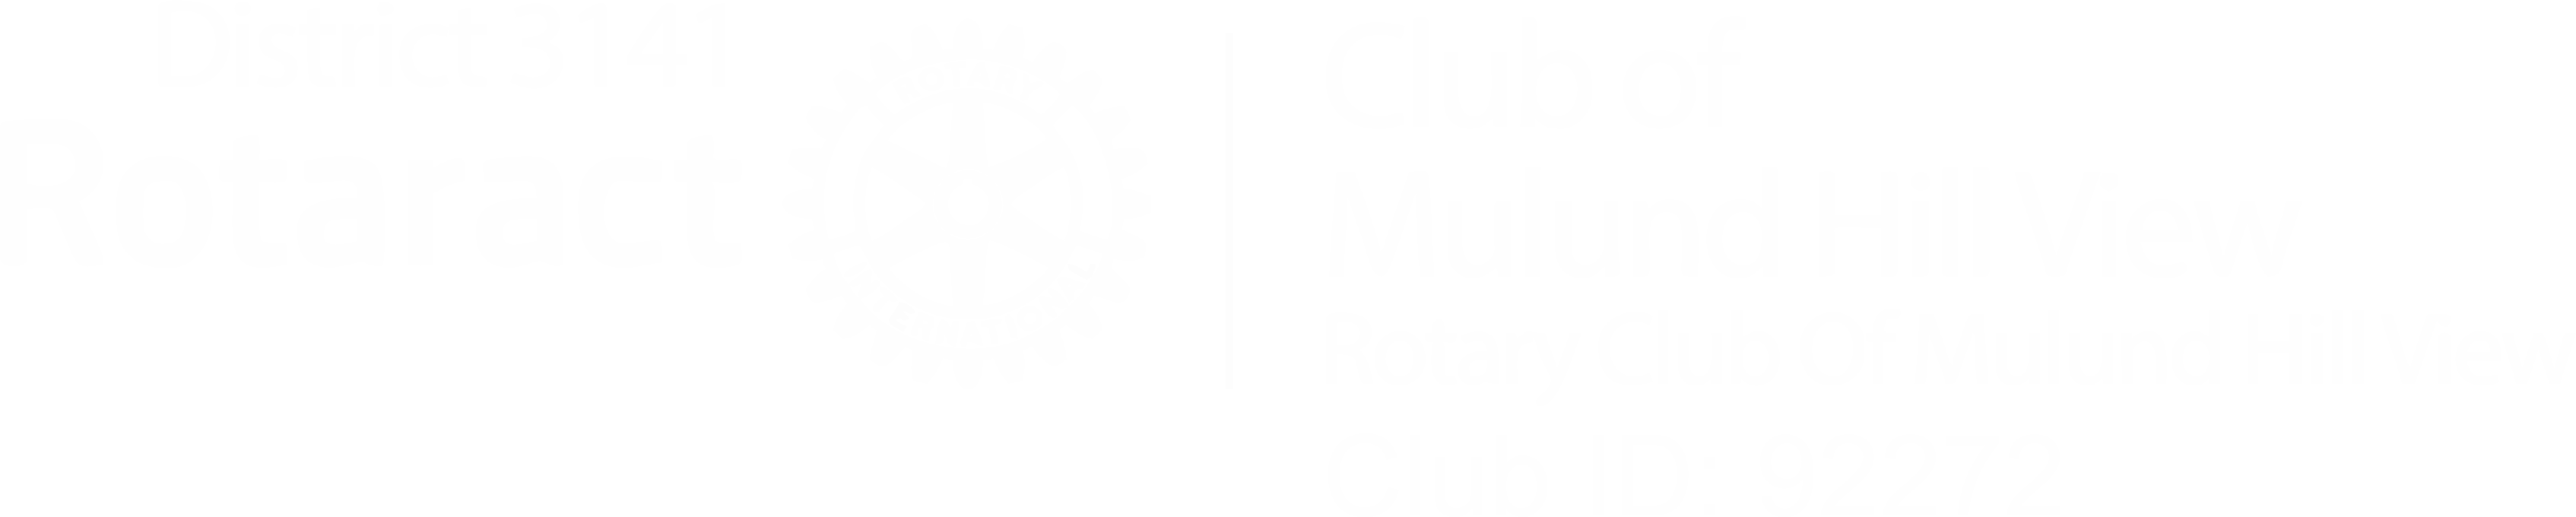 Rotaract Club Of Mulund Hill View